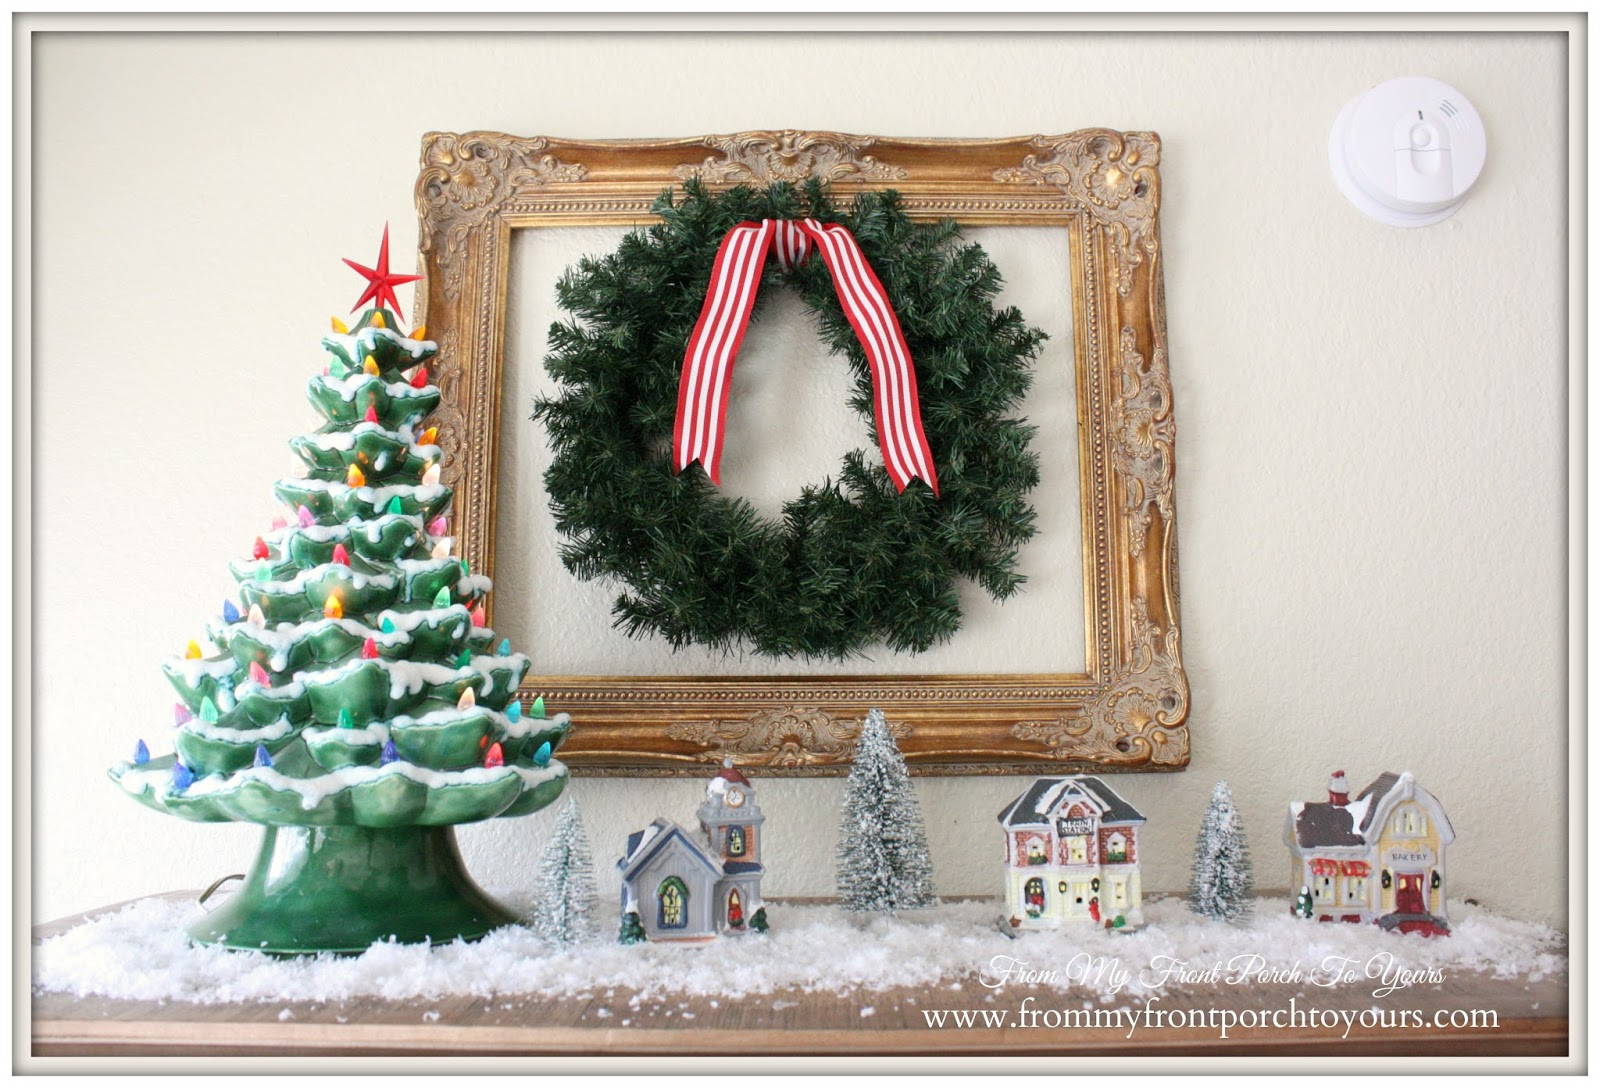 Vintage Ceramic Christmas Tree-French Farmhouse Christmas Kitchen- From My Front Porch To Yours